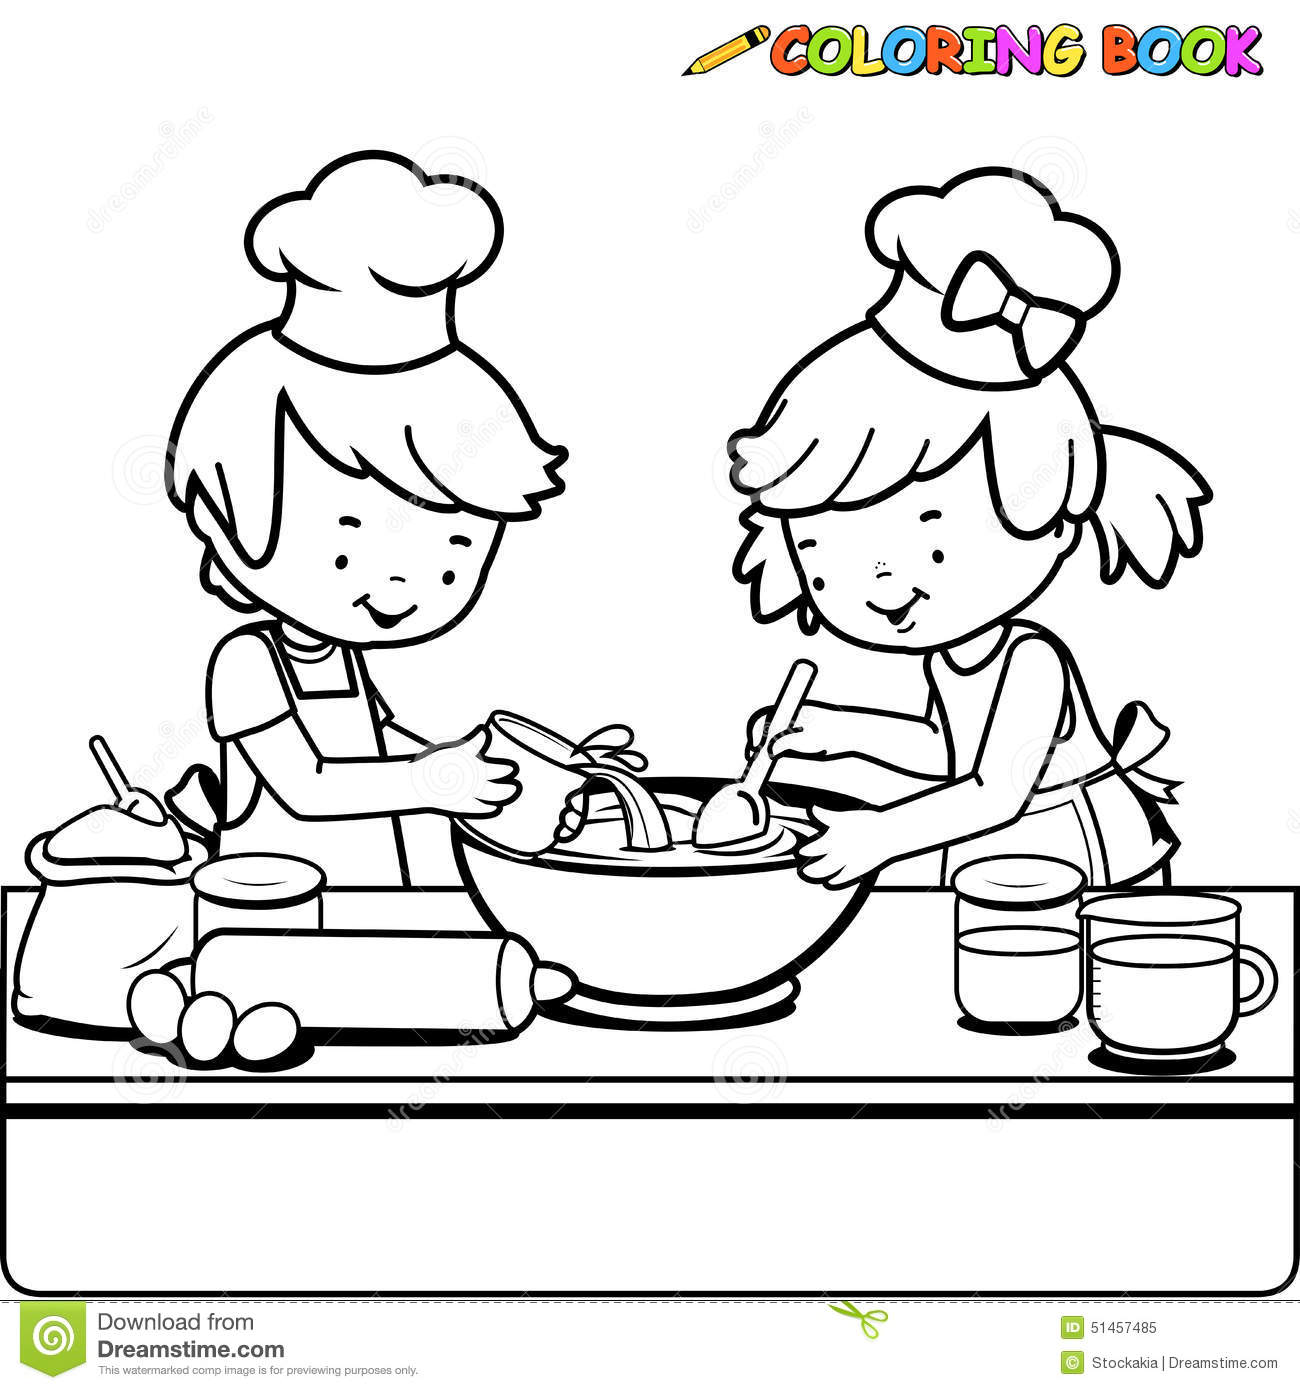 Stock Illustration Children Cooking Coloring Book Page Vector Illustration Black White Outline Image Boy Girl Kitchen Image51457485 on baking cartoon